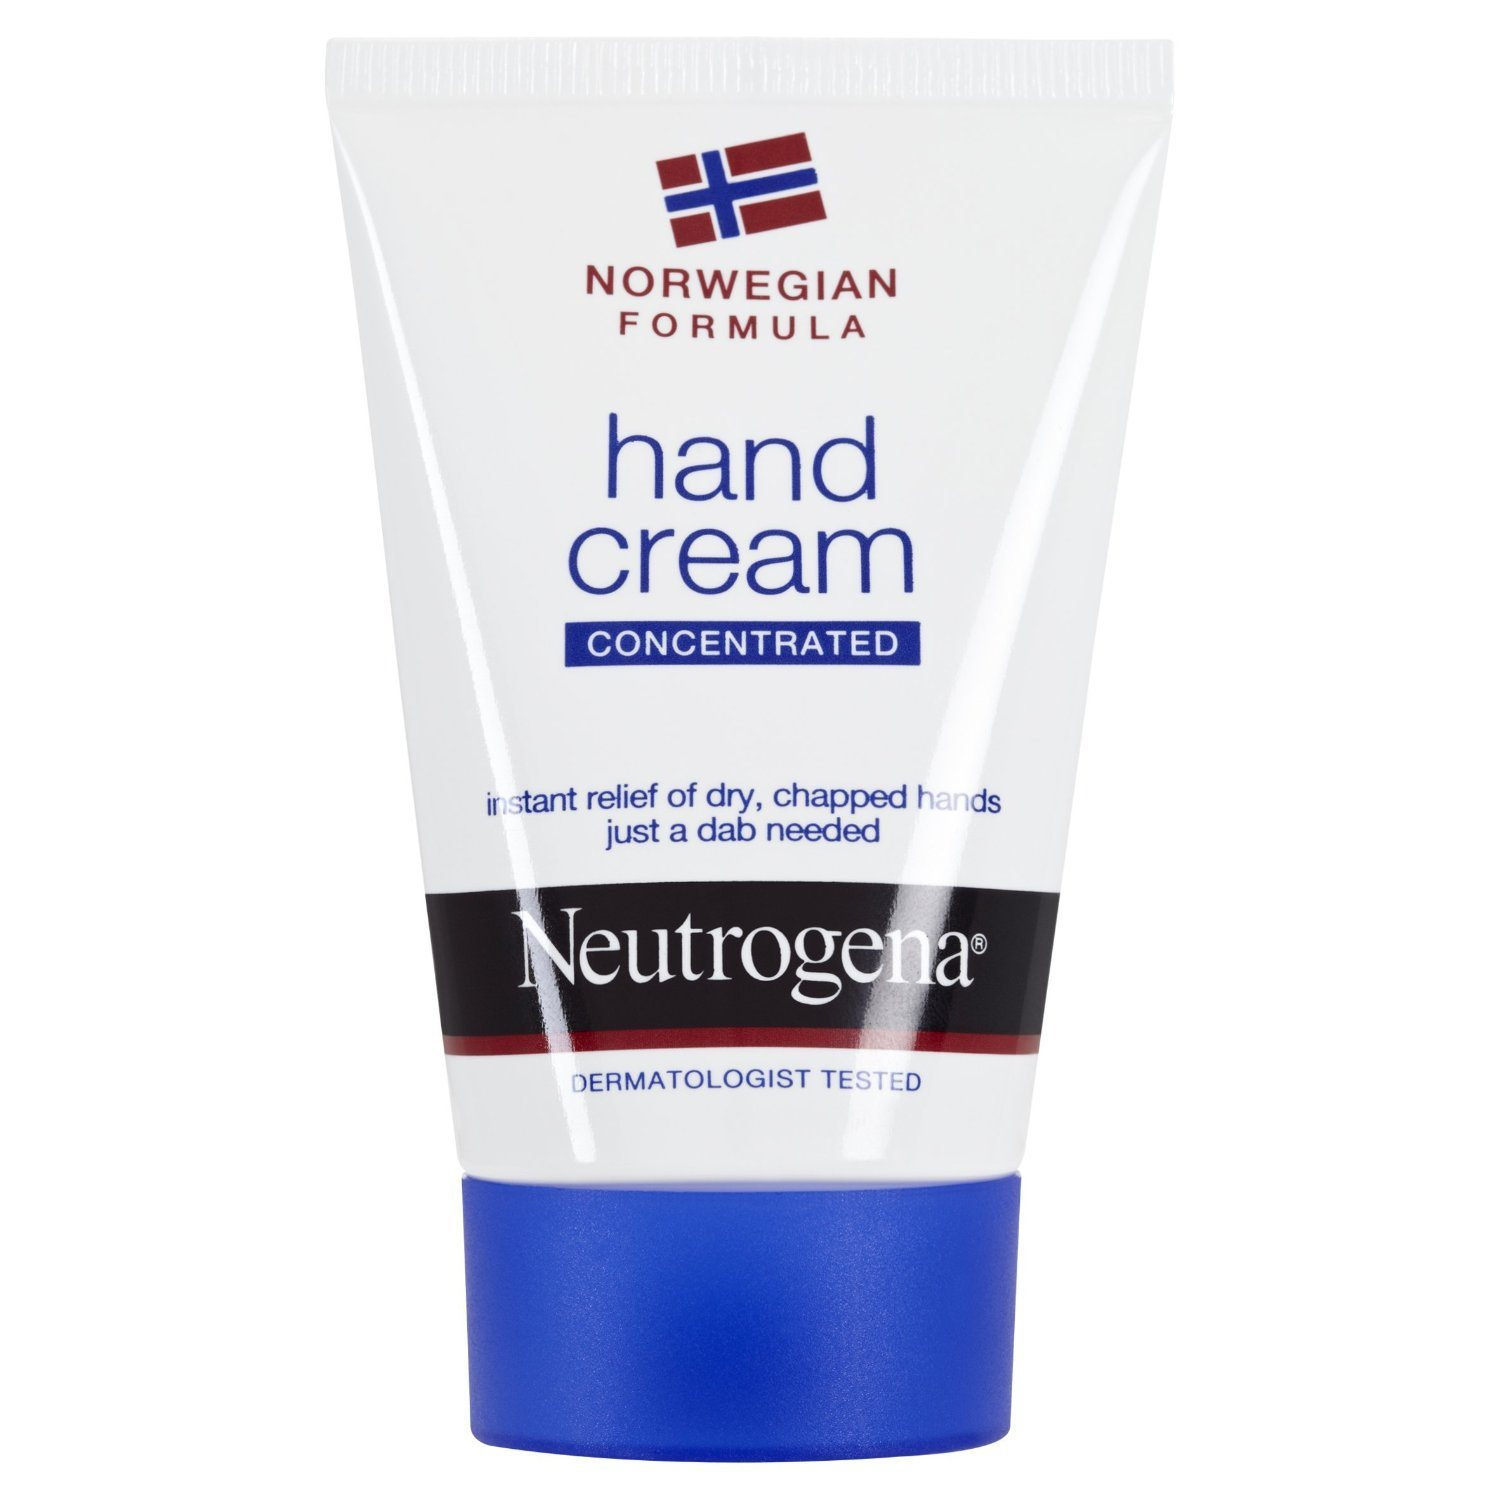 Neutrogena Norwegian Formula Hand Cream Concentrated